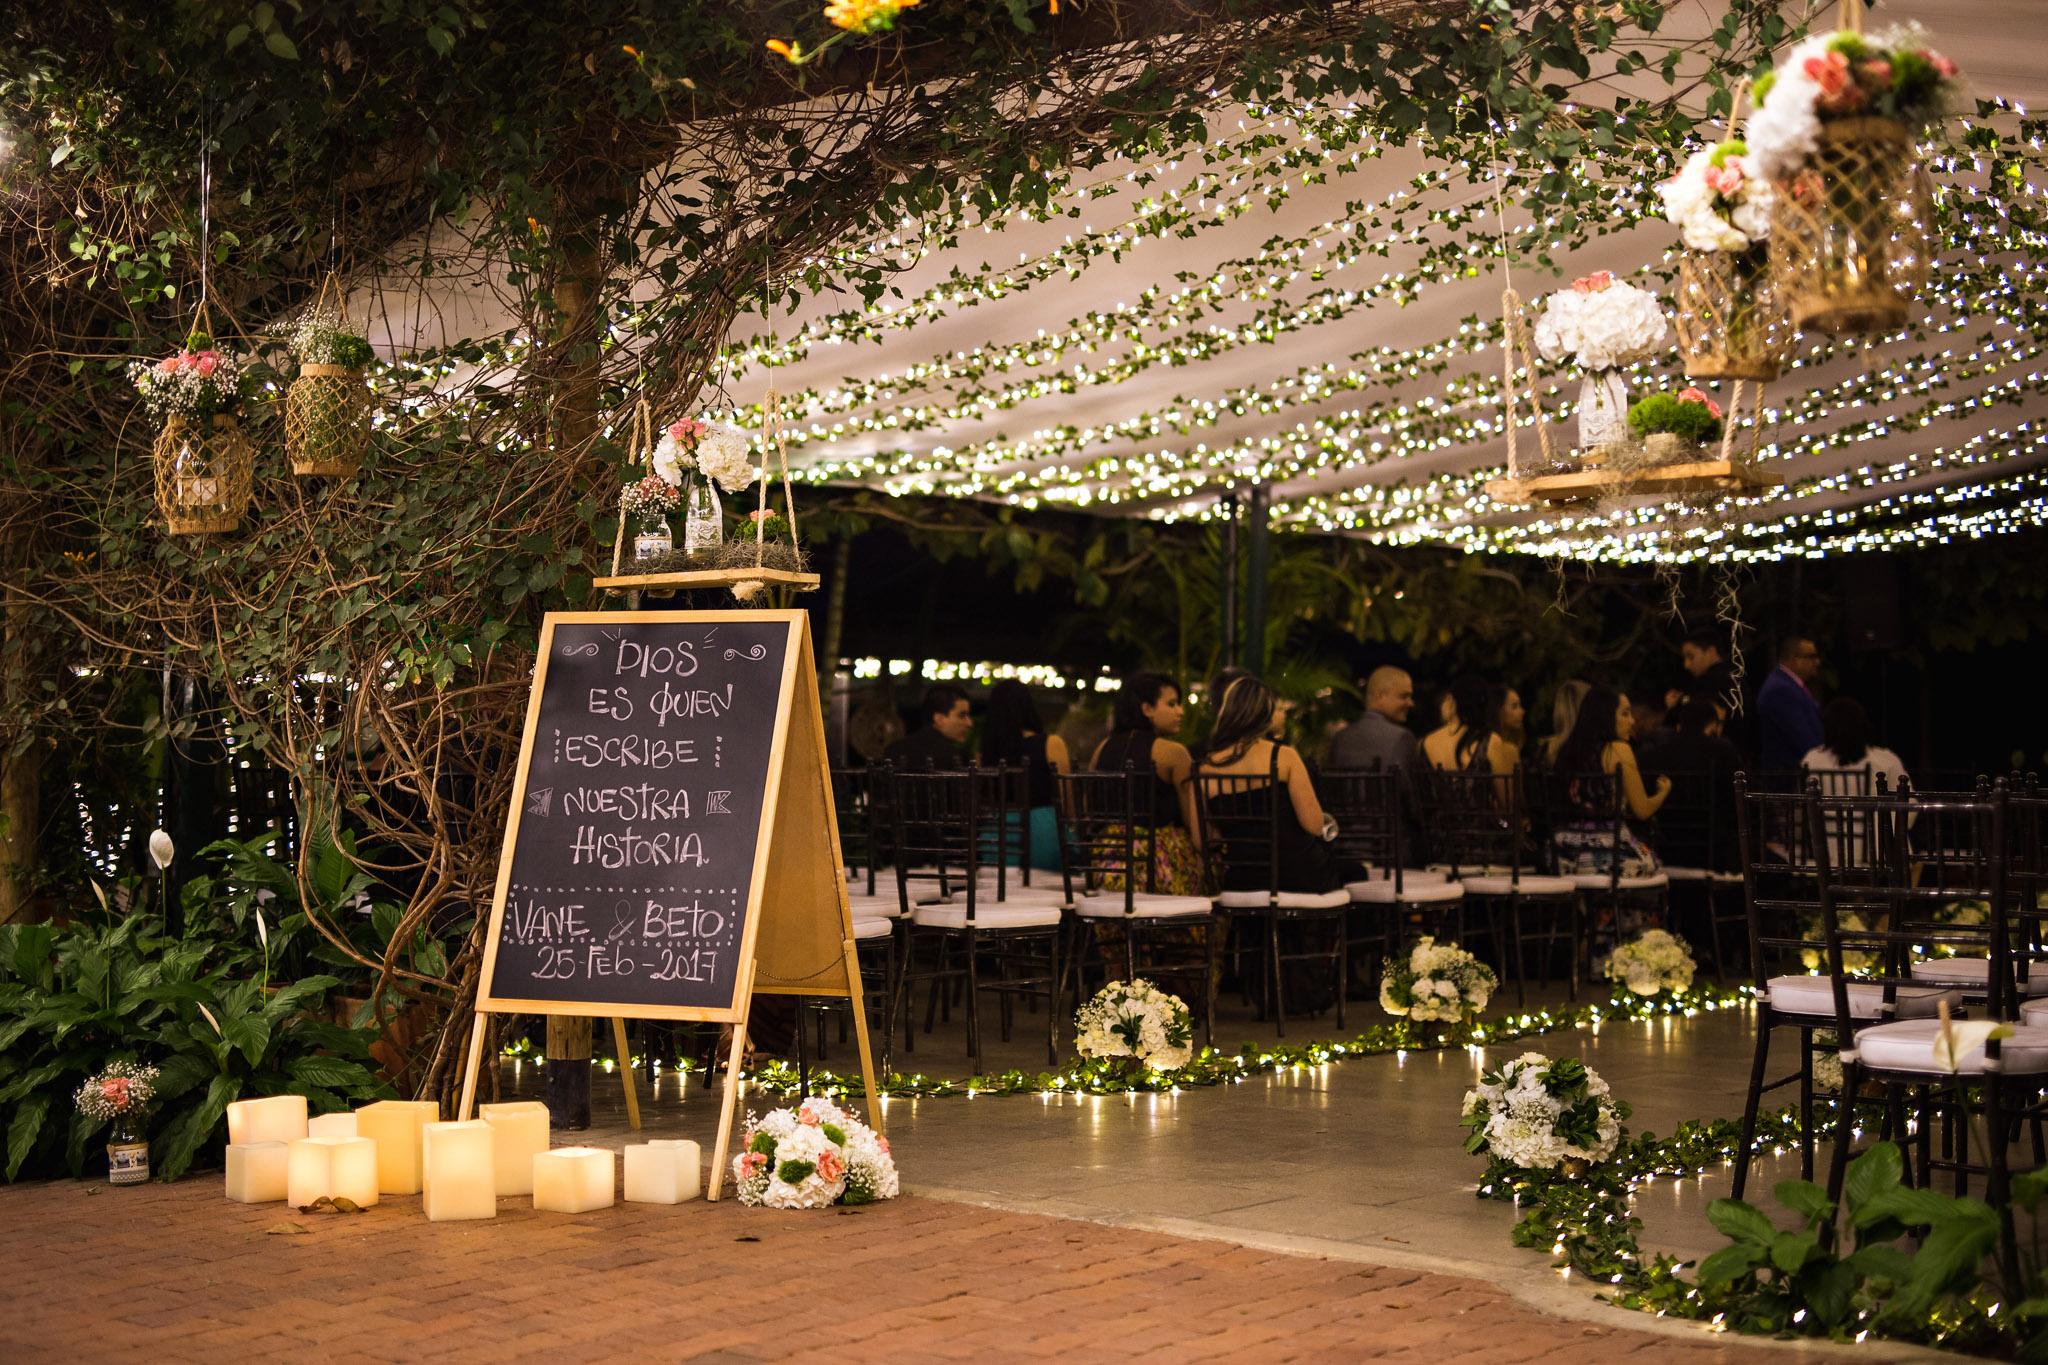 wedding-travellers-destination-wedding-photography-colombia-medellin-chuscalito-night-ceremony